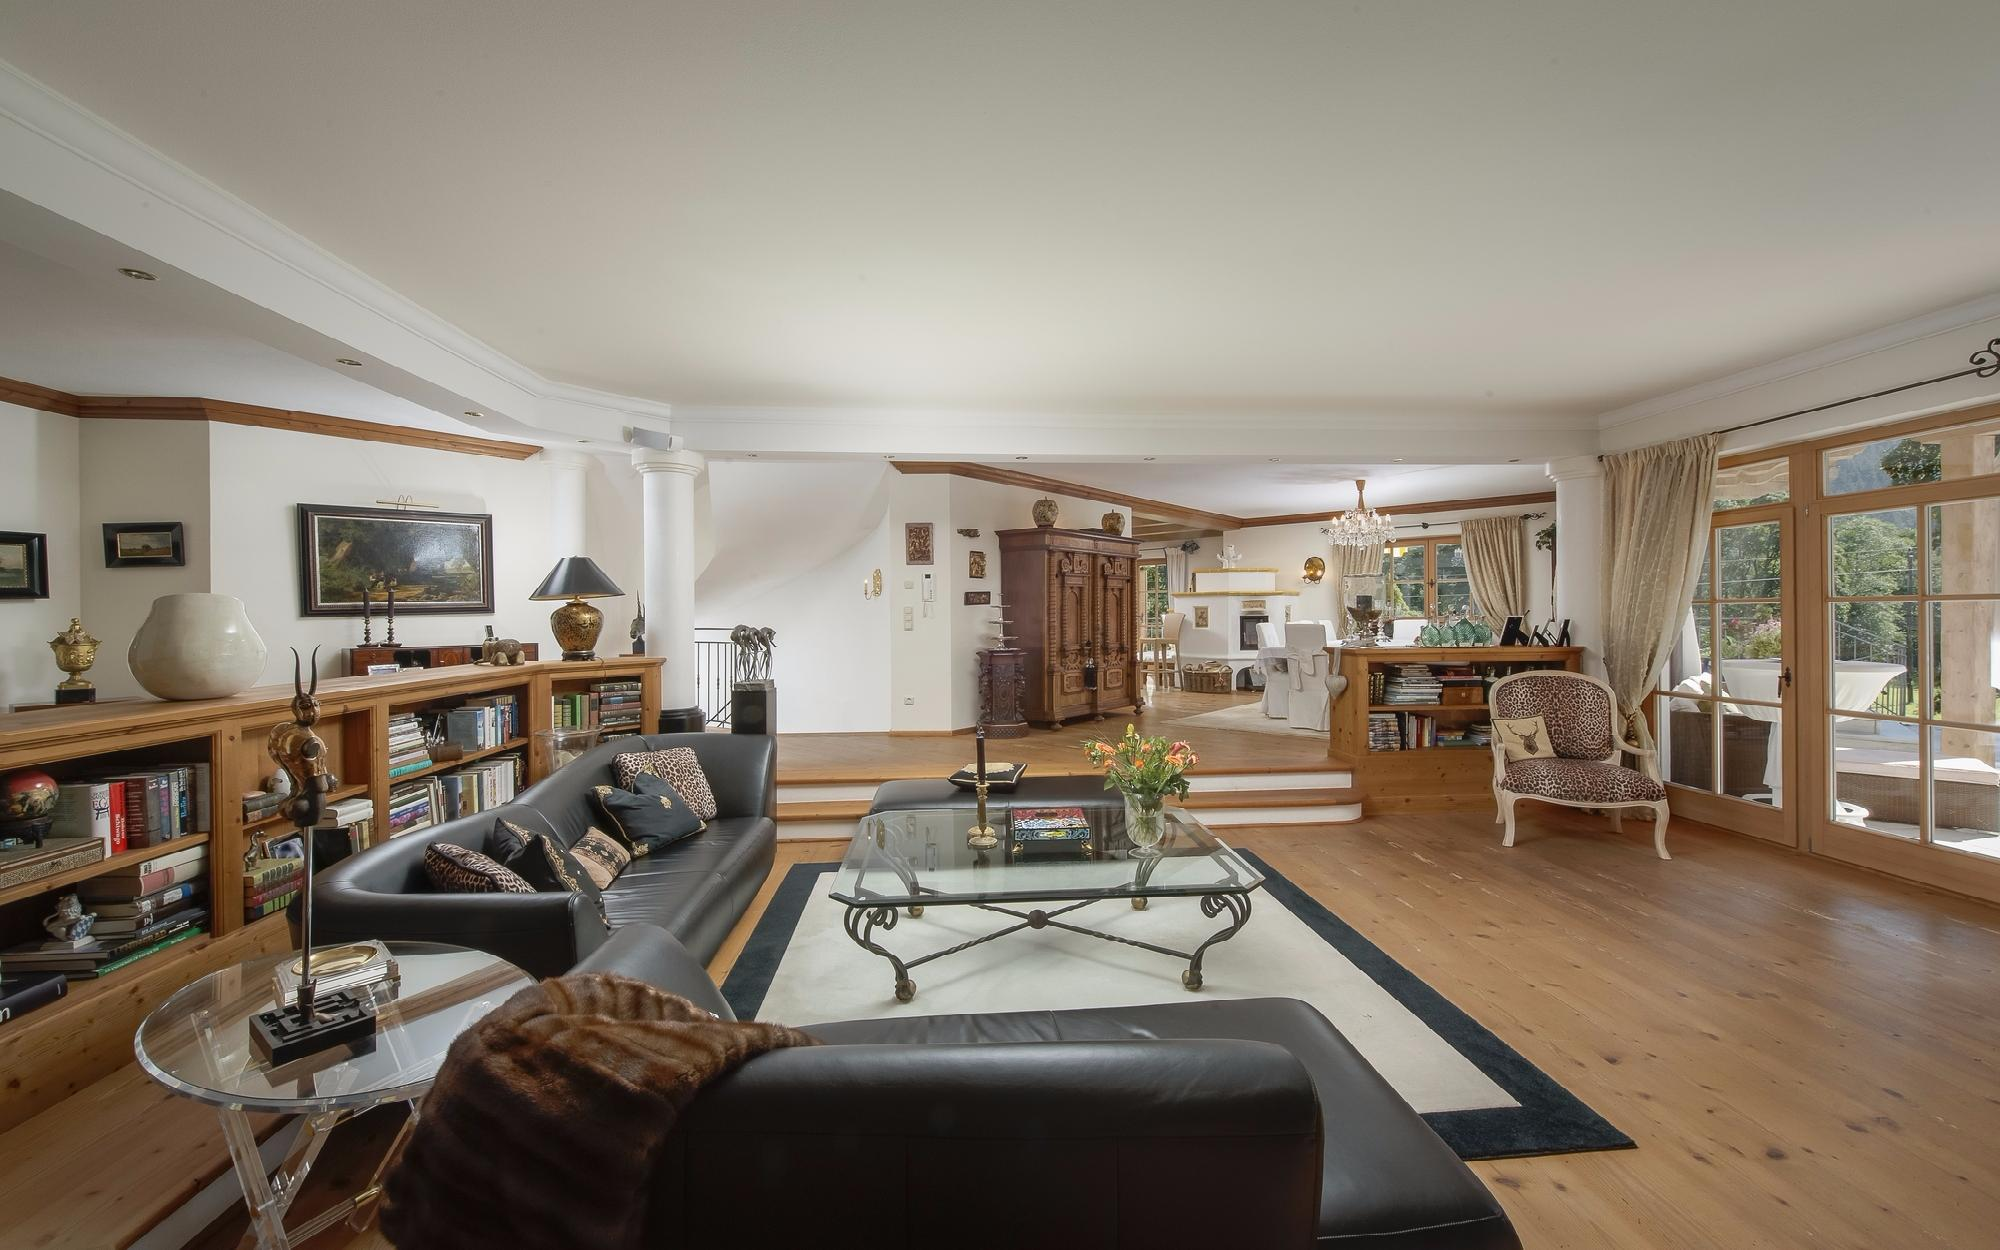 Spacious luxury apartment in a beautiful location in Aurach For Sale - Aurach - Kitzbuehel